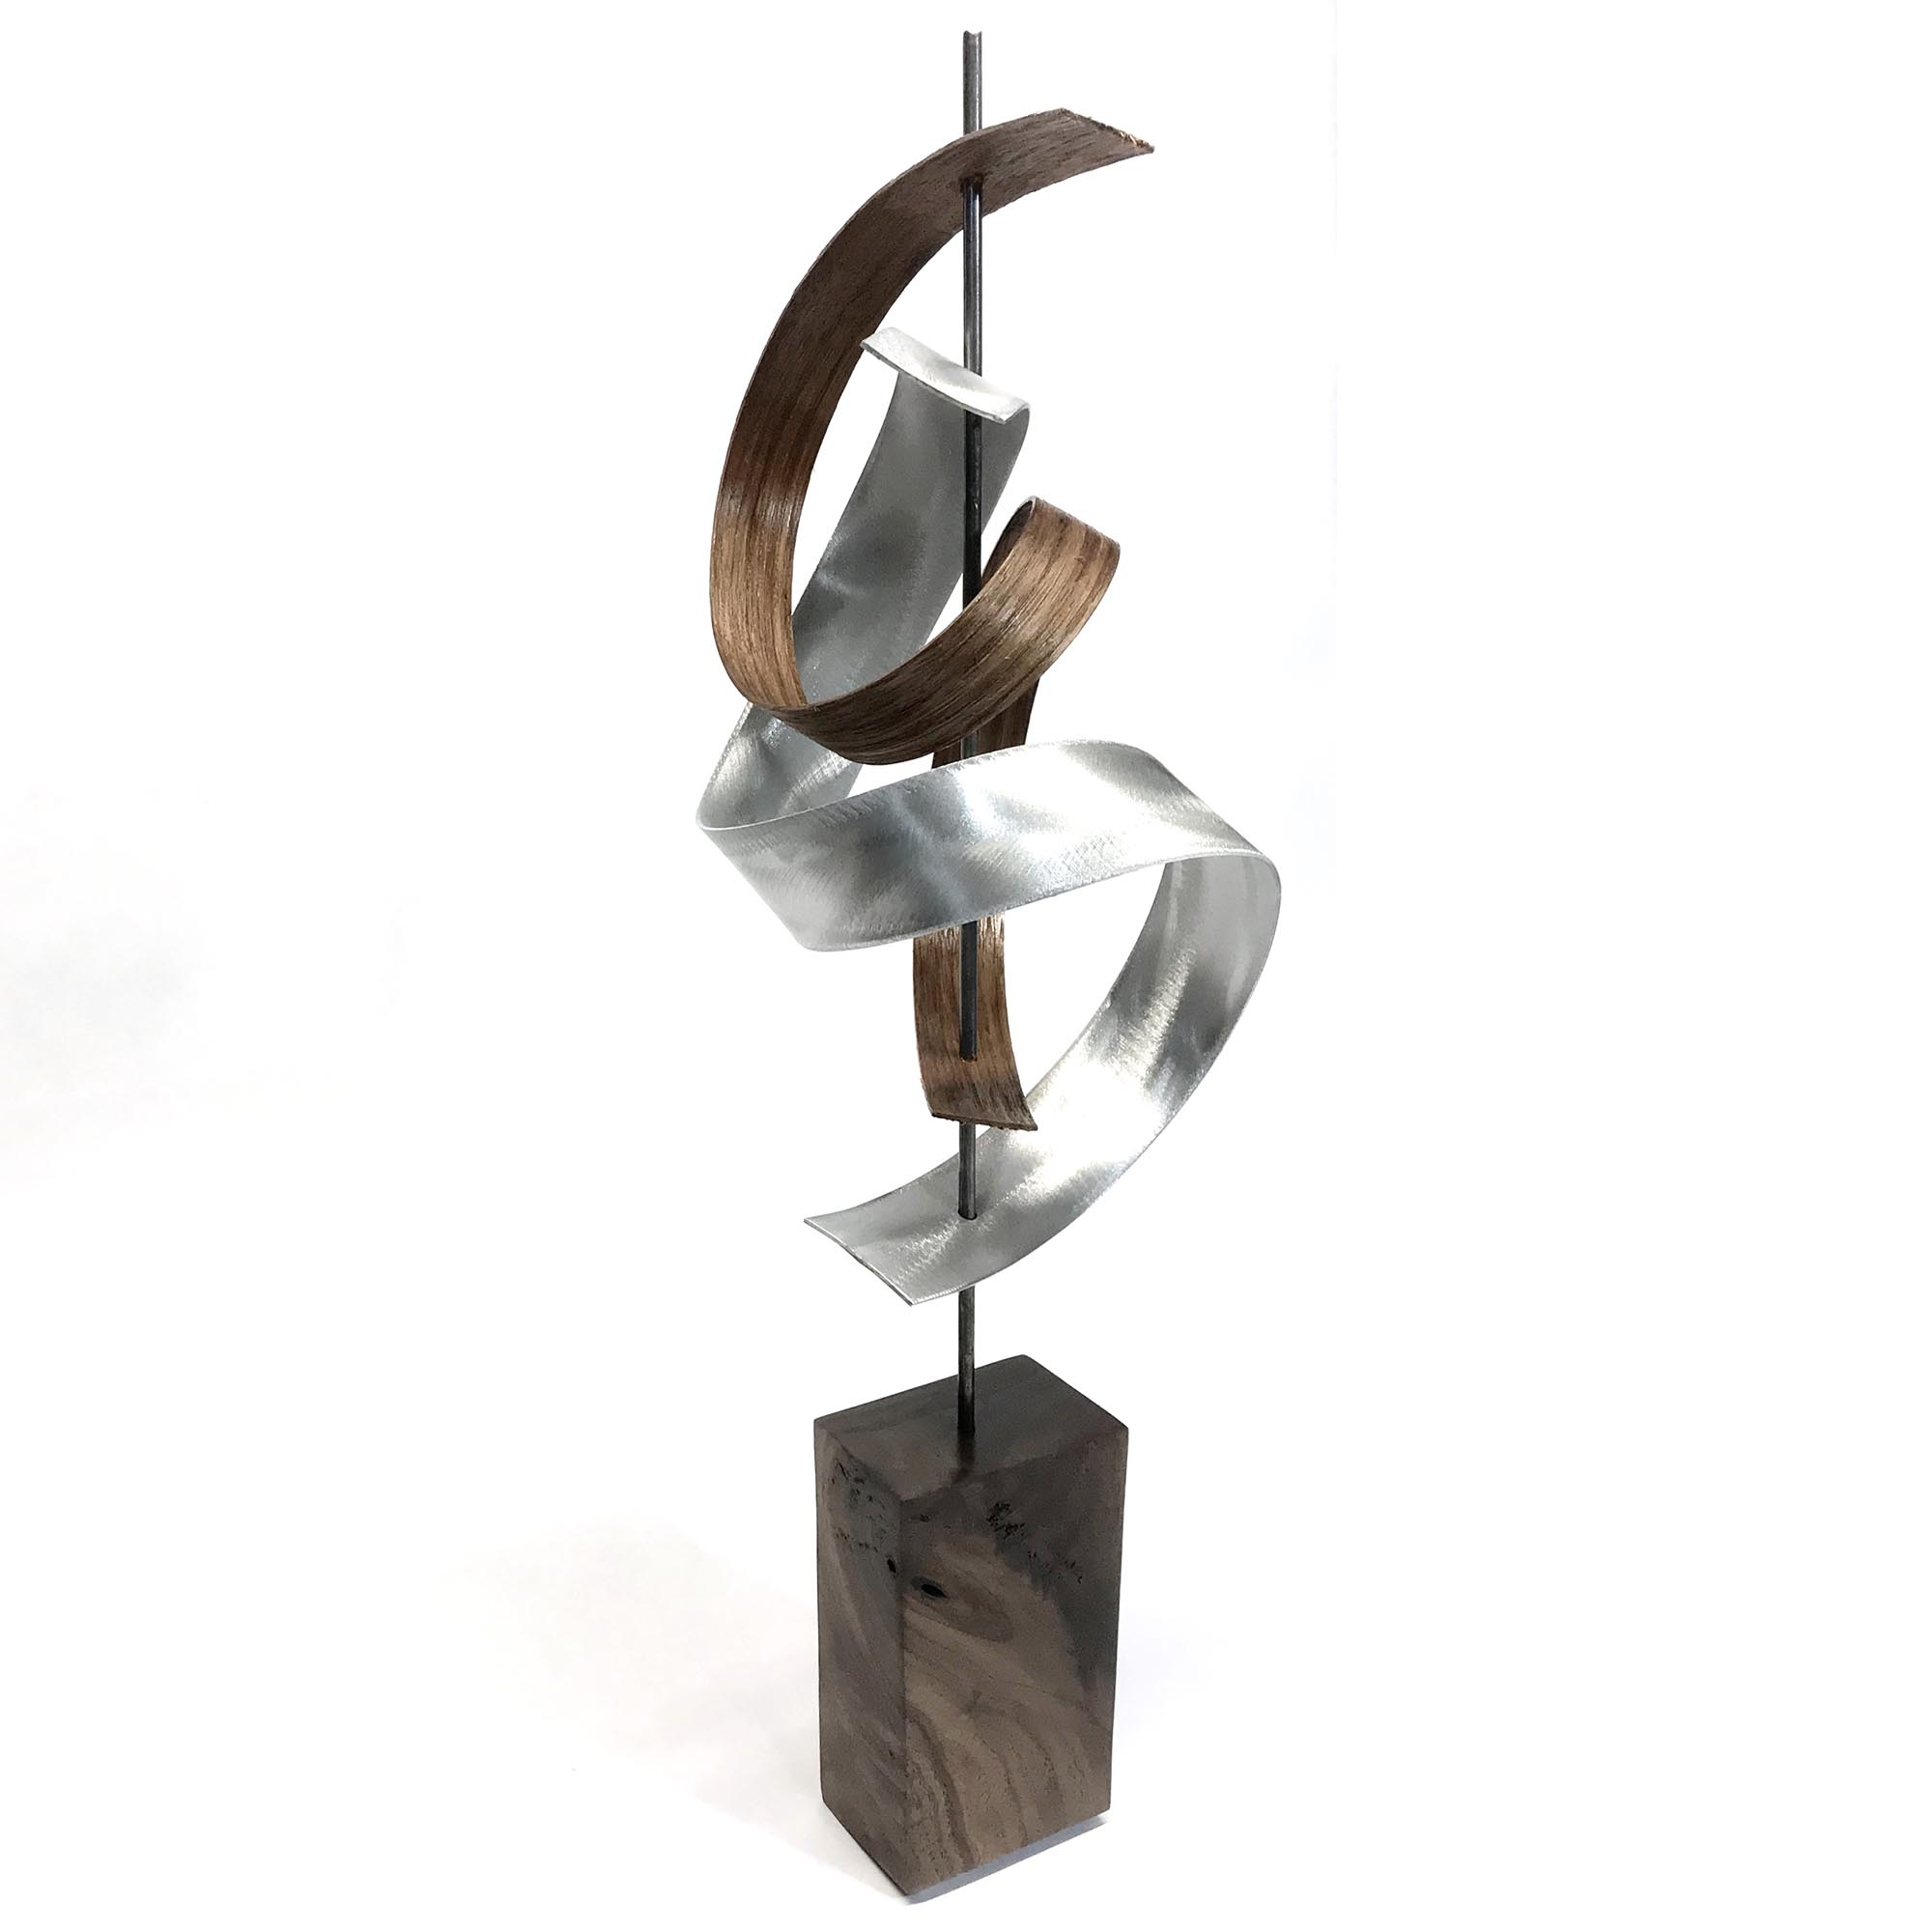 Jackson Wright 'Waltz' 6in x 20in Contemporary Style Modern Wood Sculpture